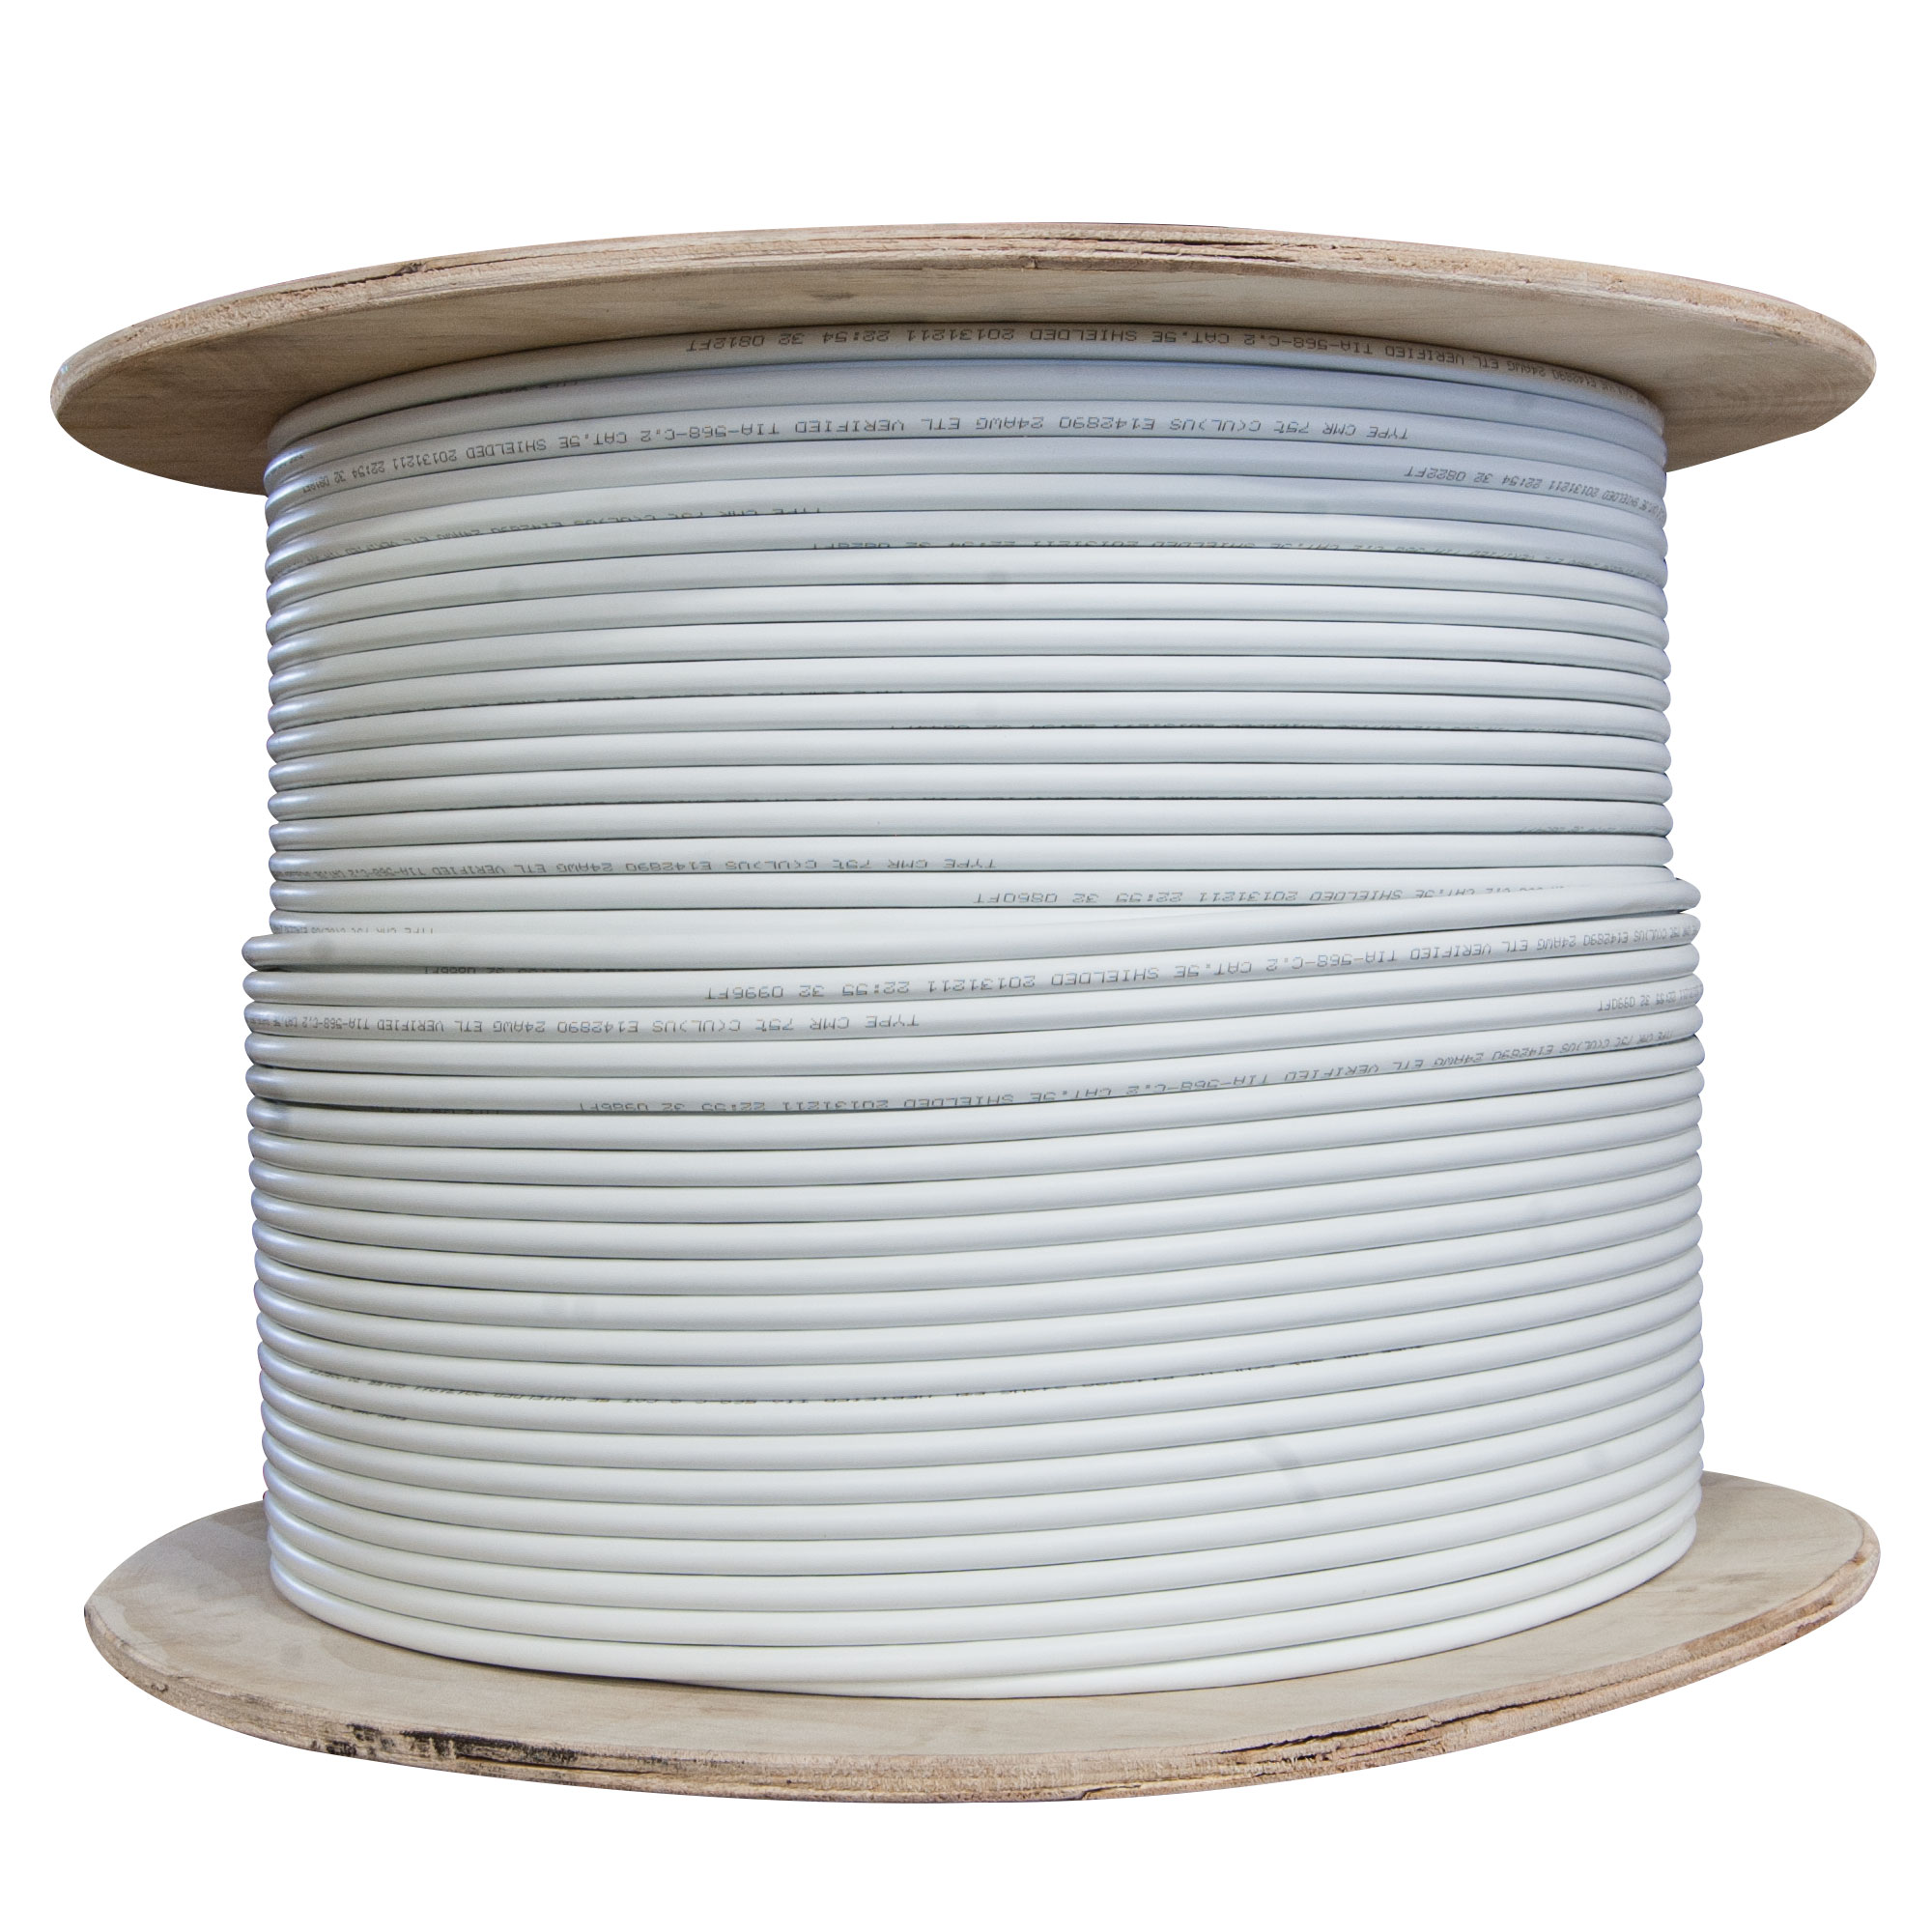 1000ft Solid Spool Cat5e White Ethernet Cable Cablewholesale 568 Cat5 Wiring Diagram Bulk Shielded 1000 Foot Part Number